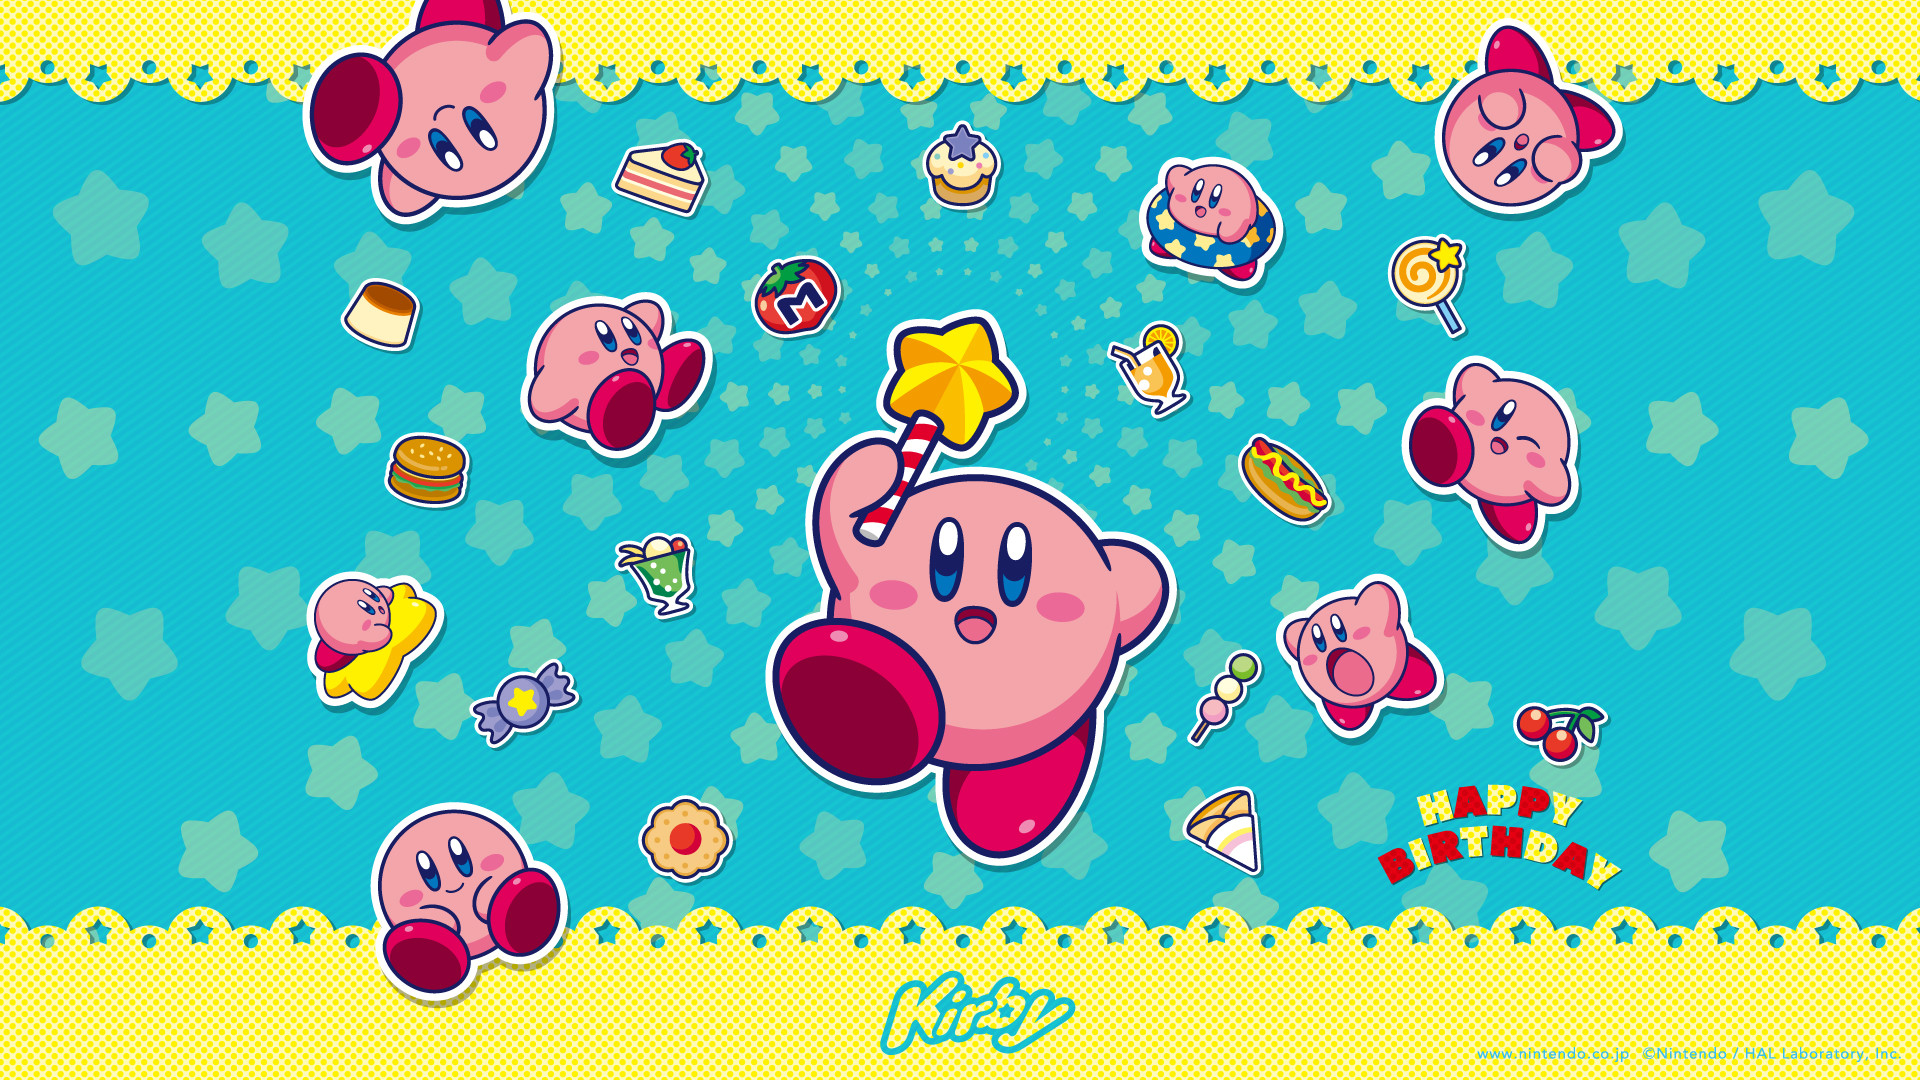 73 Kirby Wallpapers on WallpaperPlay 1920x1080